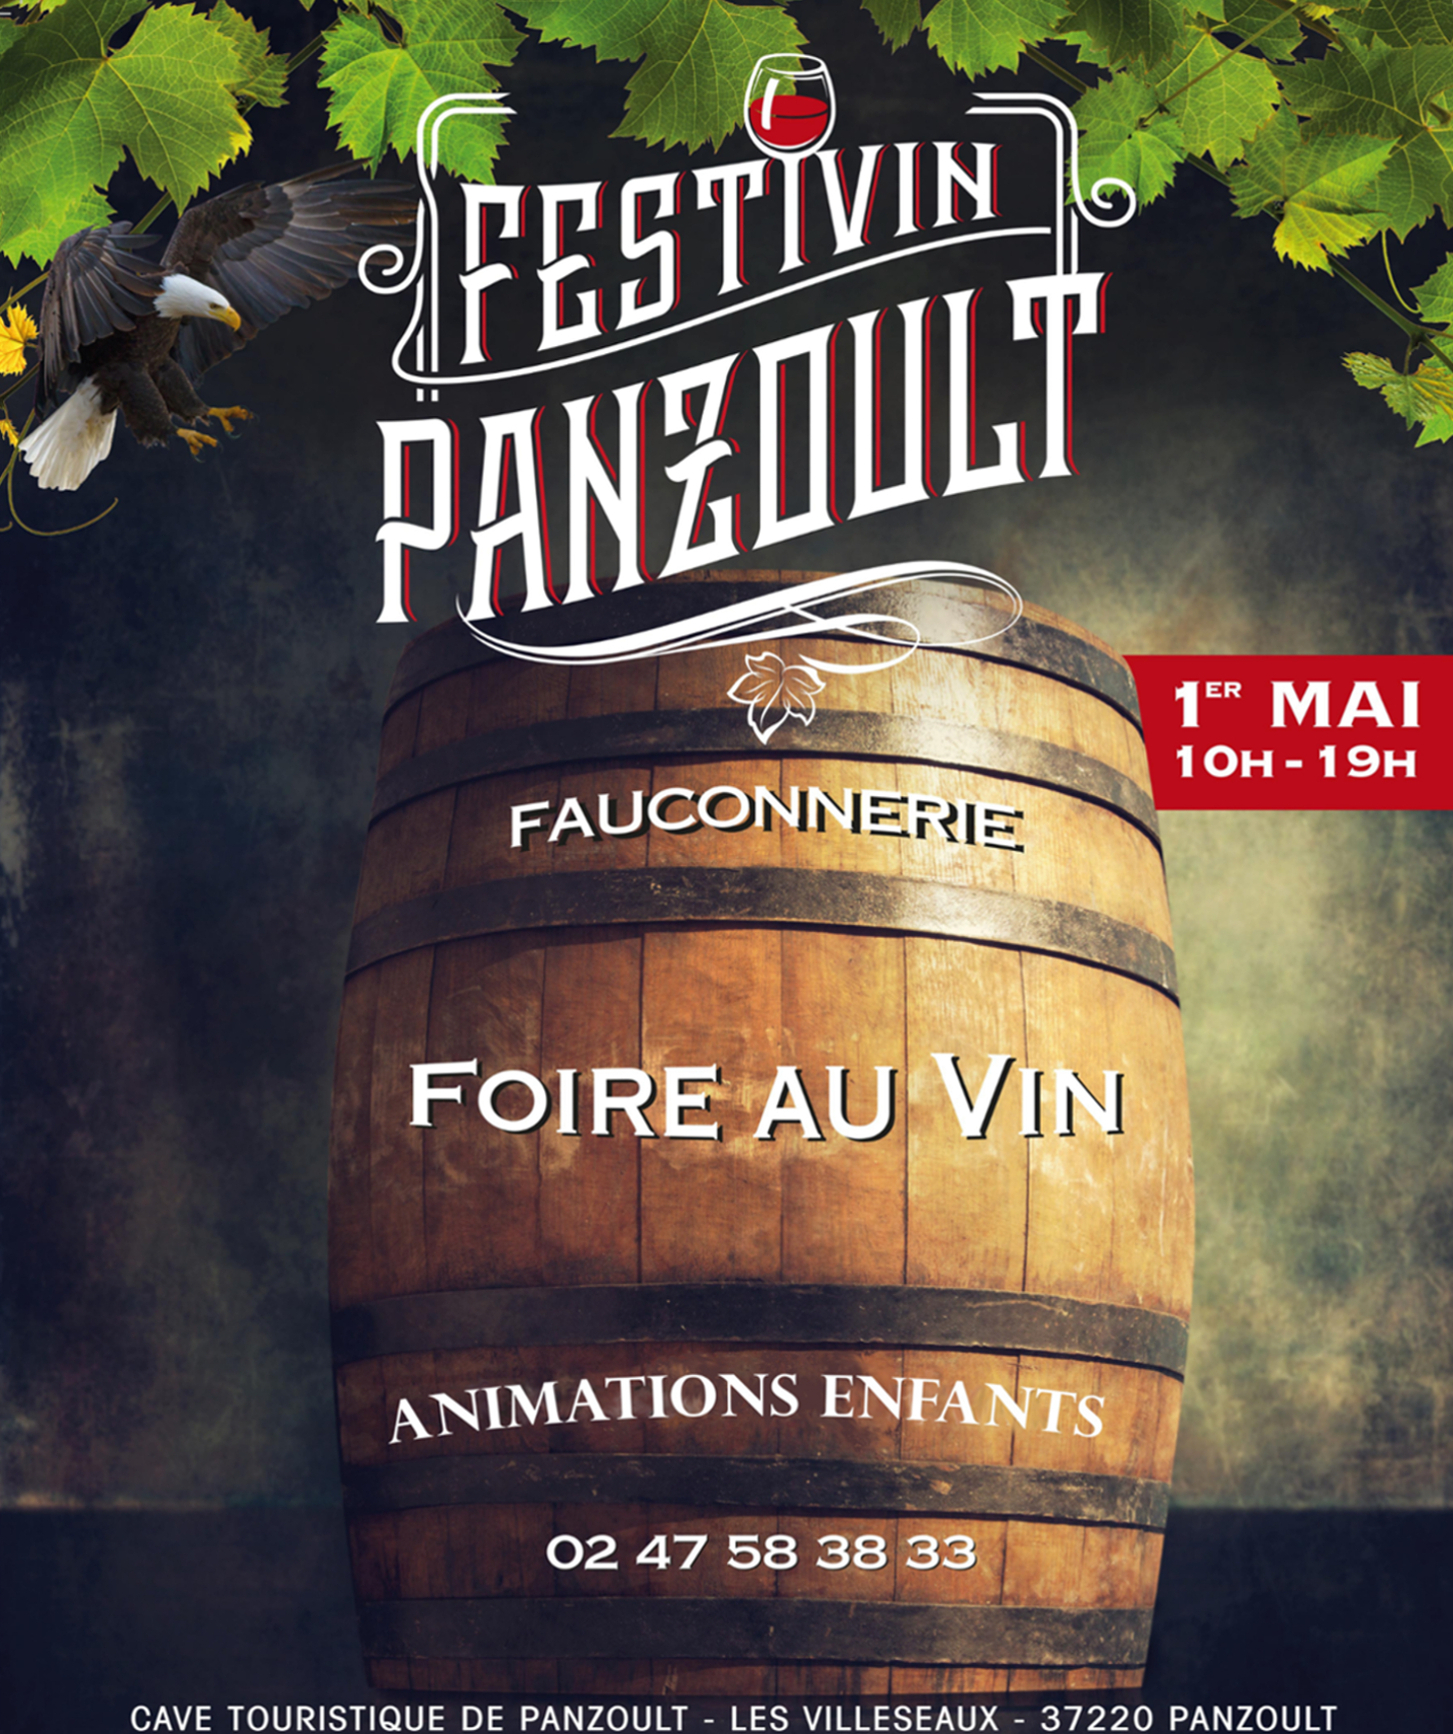 flyer festivin final 2016 cut - Copie (2)